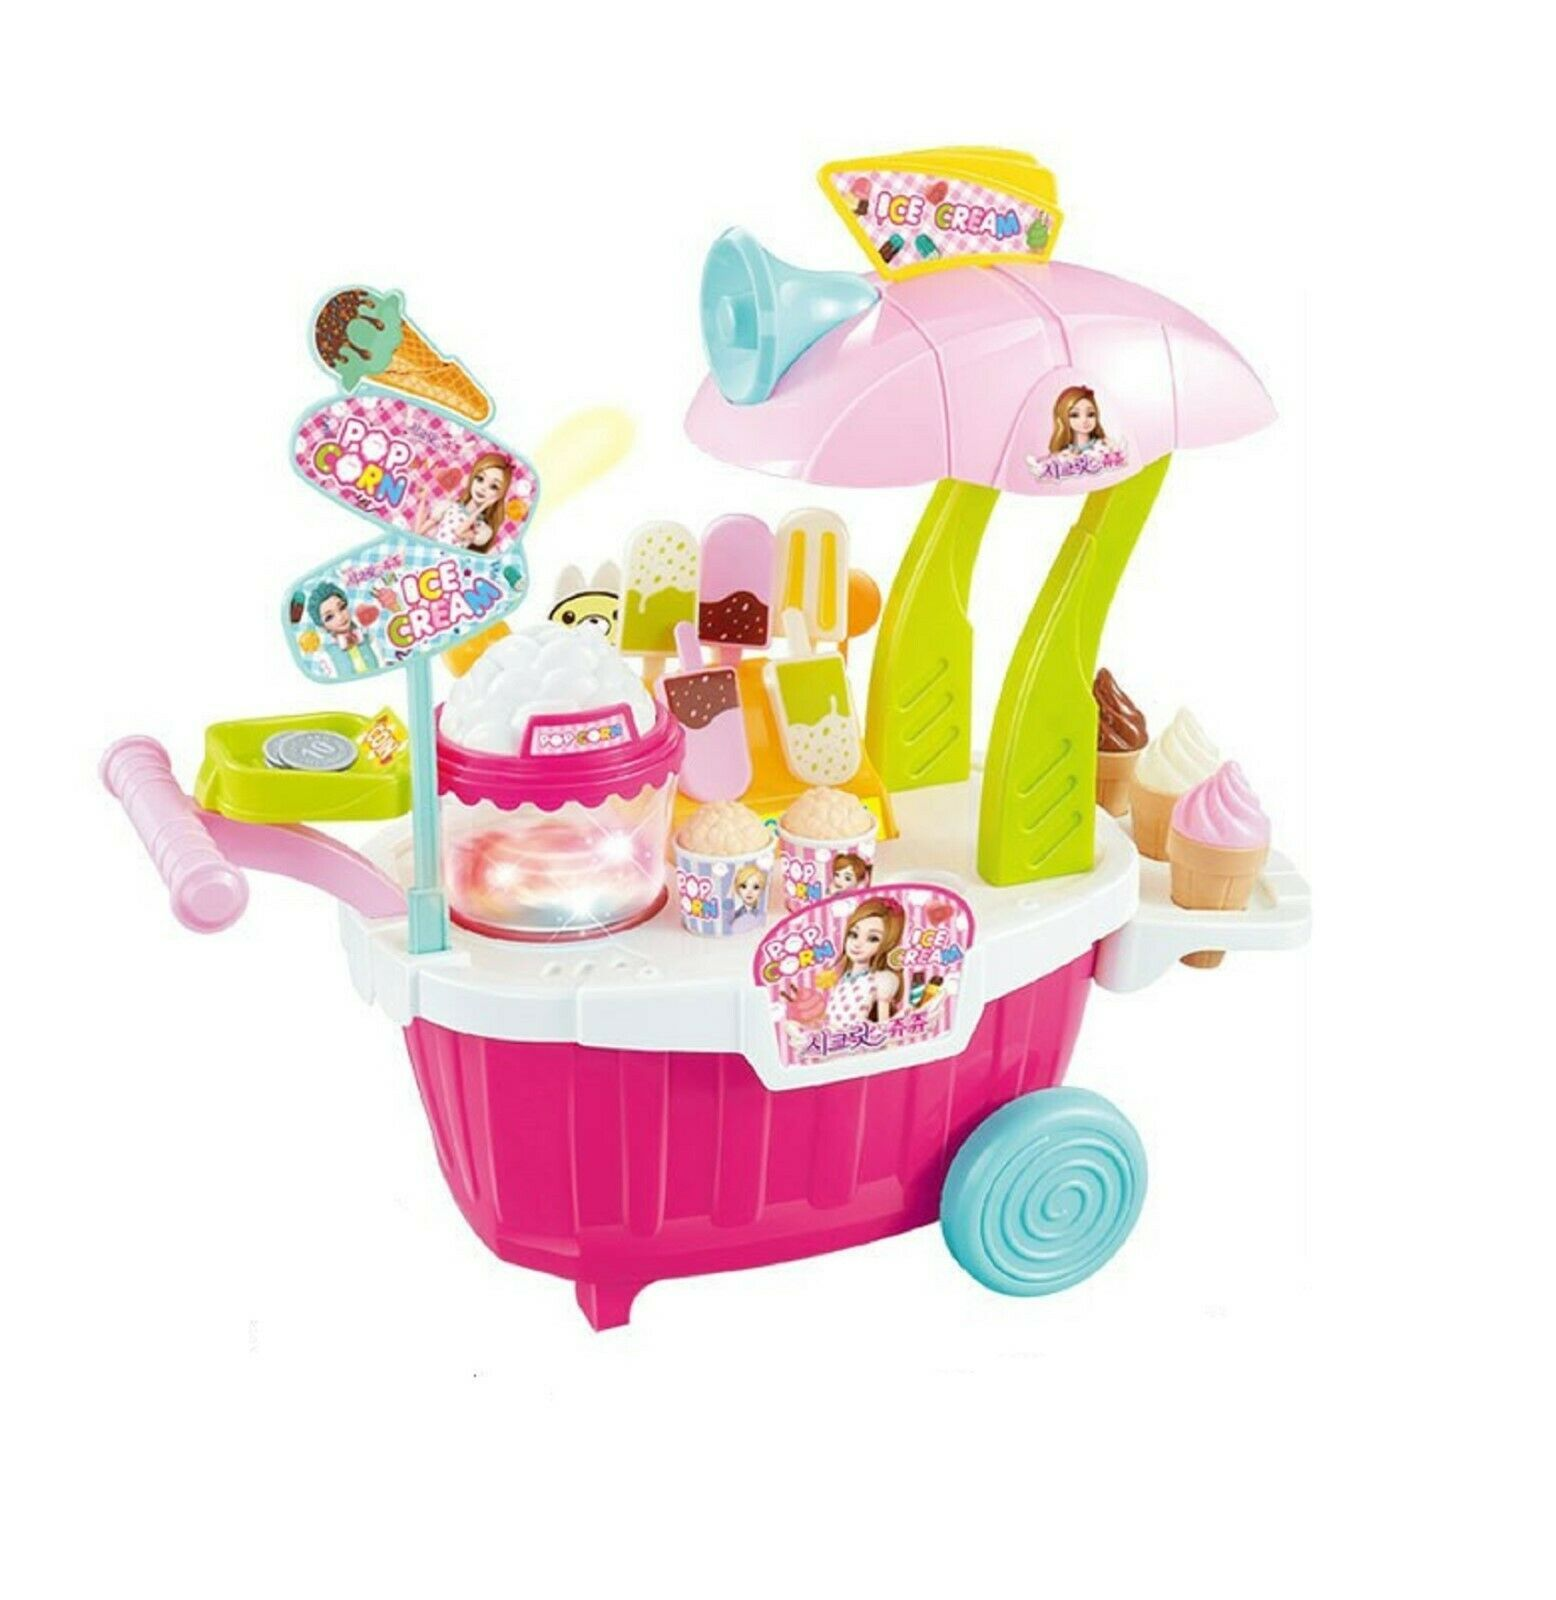 Melody Lights Popcorn Ice Cream Stall Popup Store Shop Sales Role Play Toy